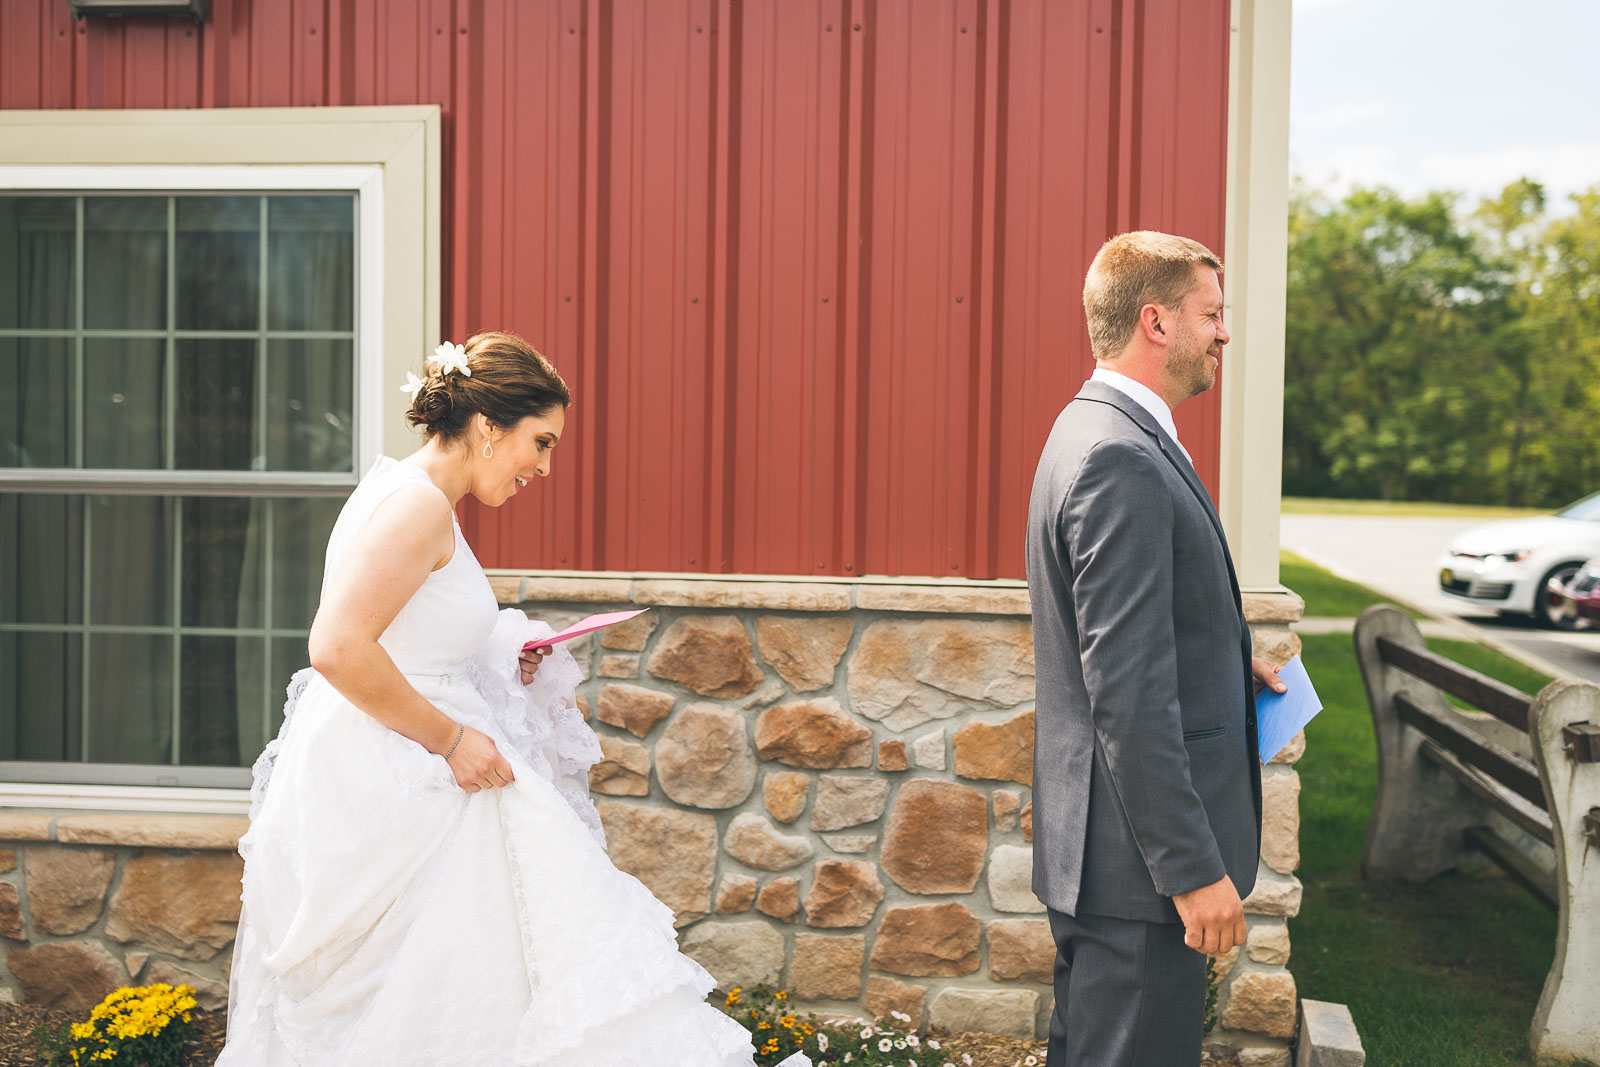 Bride approaches groom